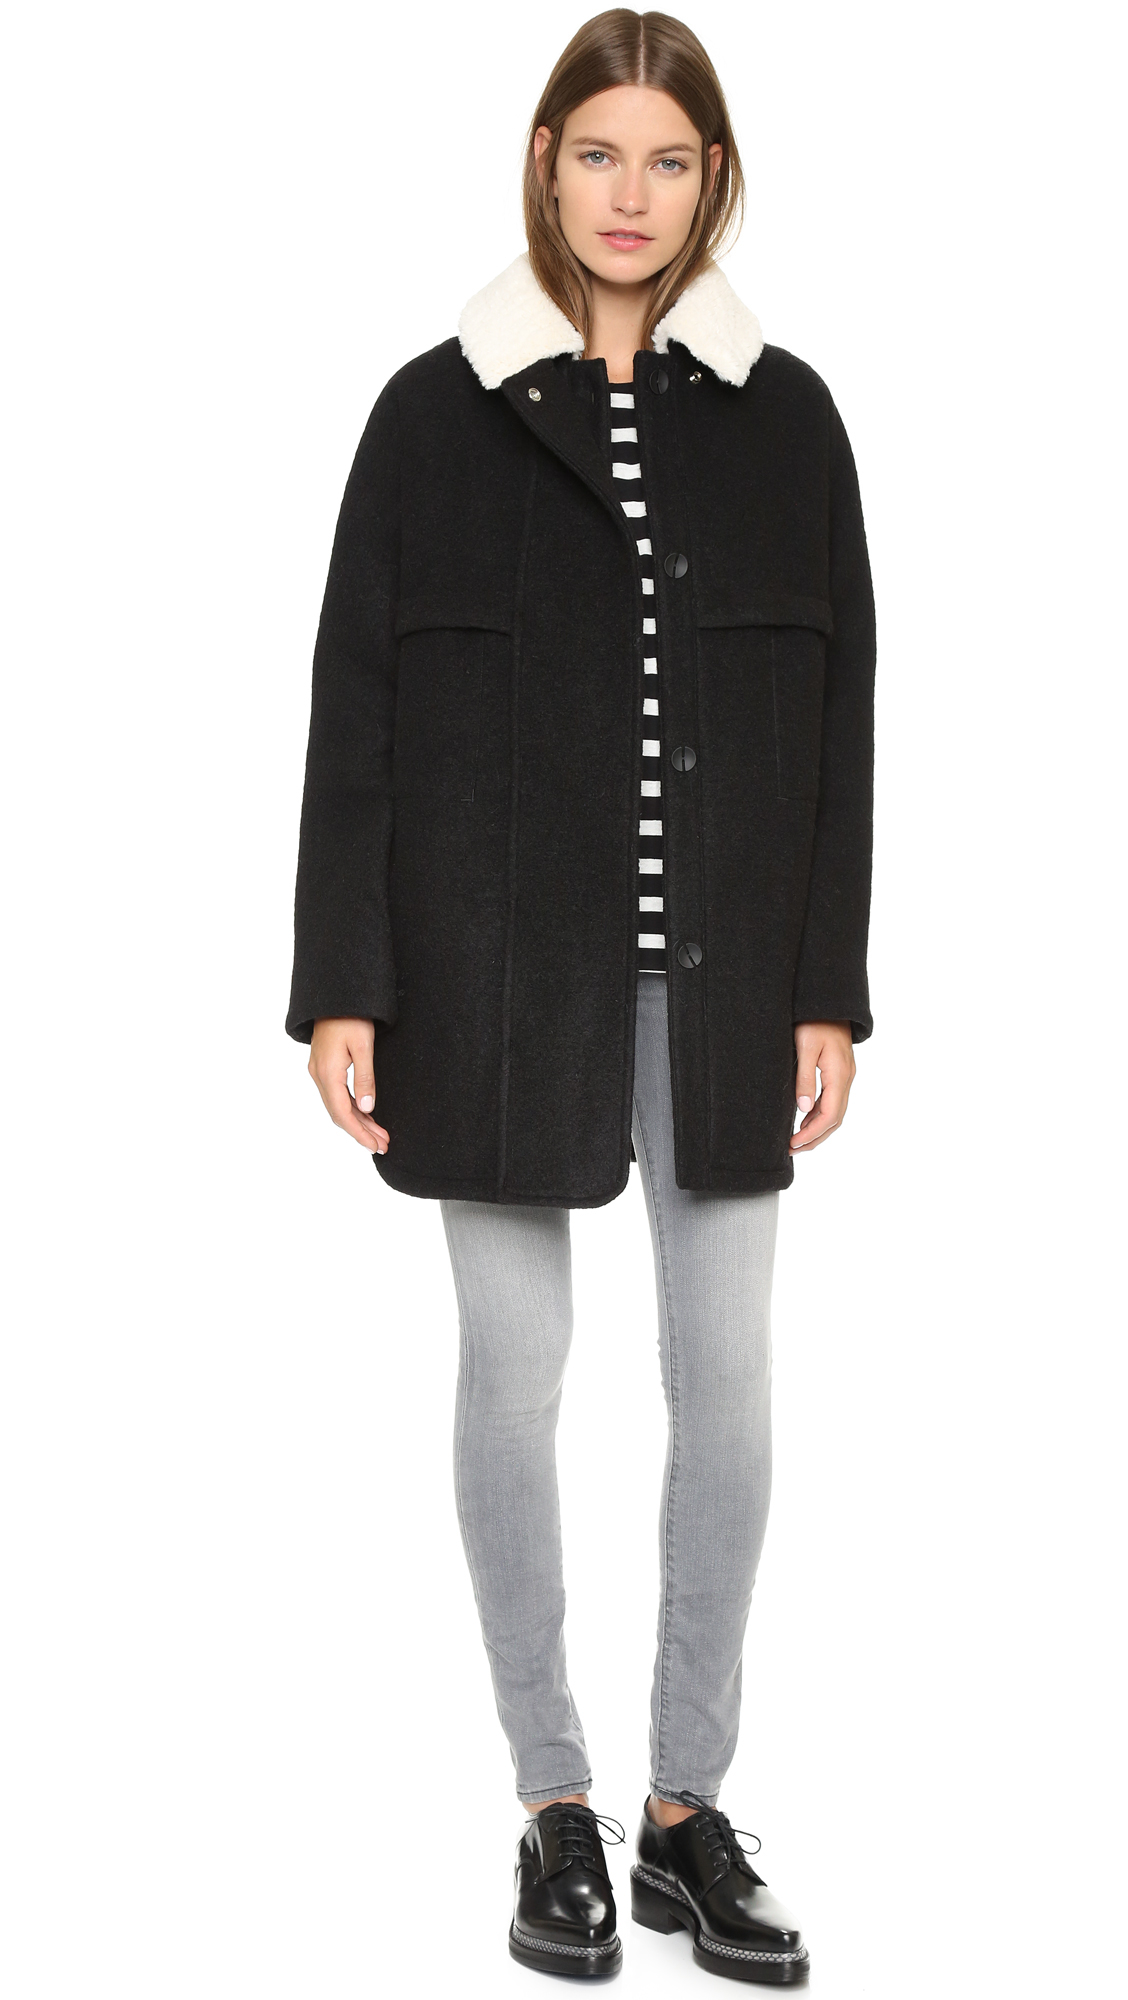 Opening ceremony Morgane Oversized Coat - Black in Black | Lyst